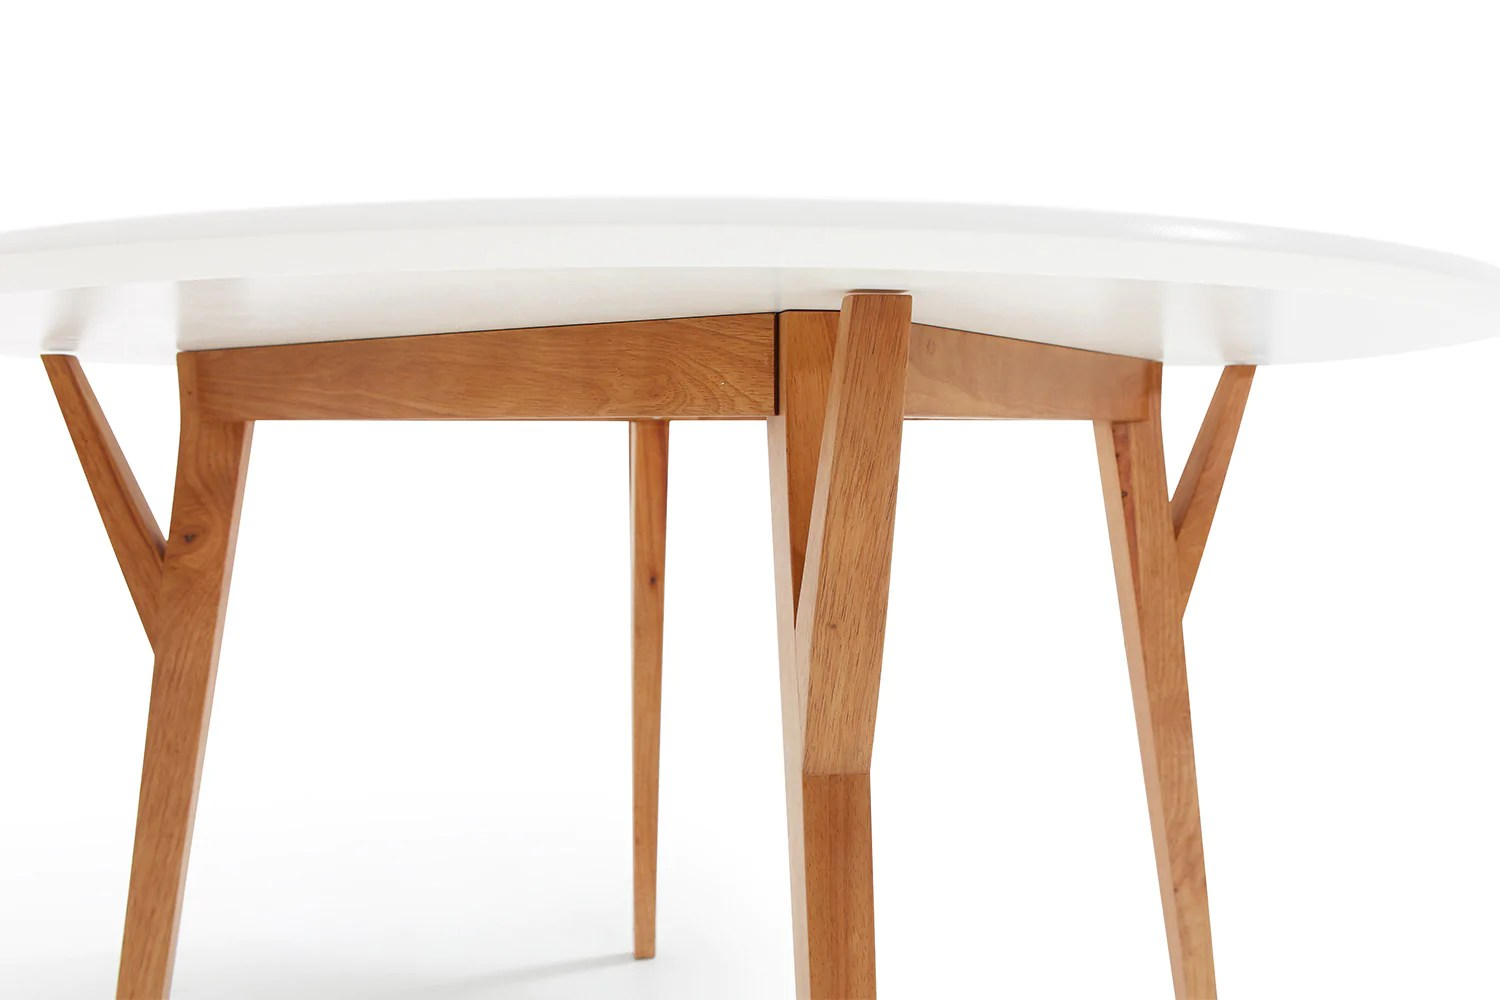 Table Arrondie Table De Salle à Manger Ronde Design Scandinave Moesa Dewarens